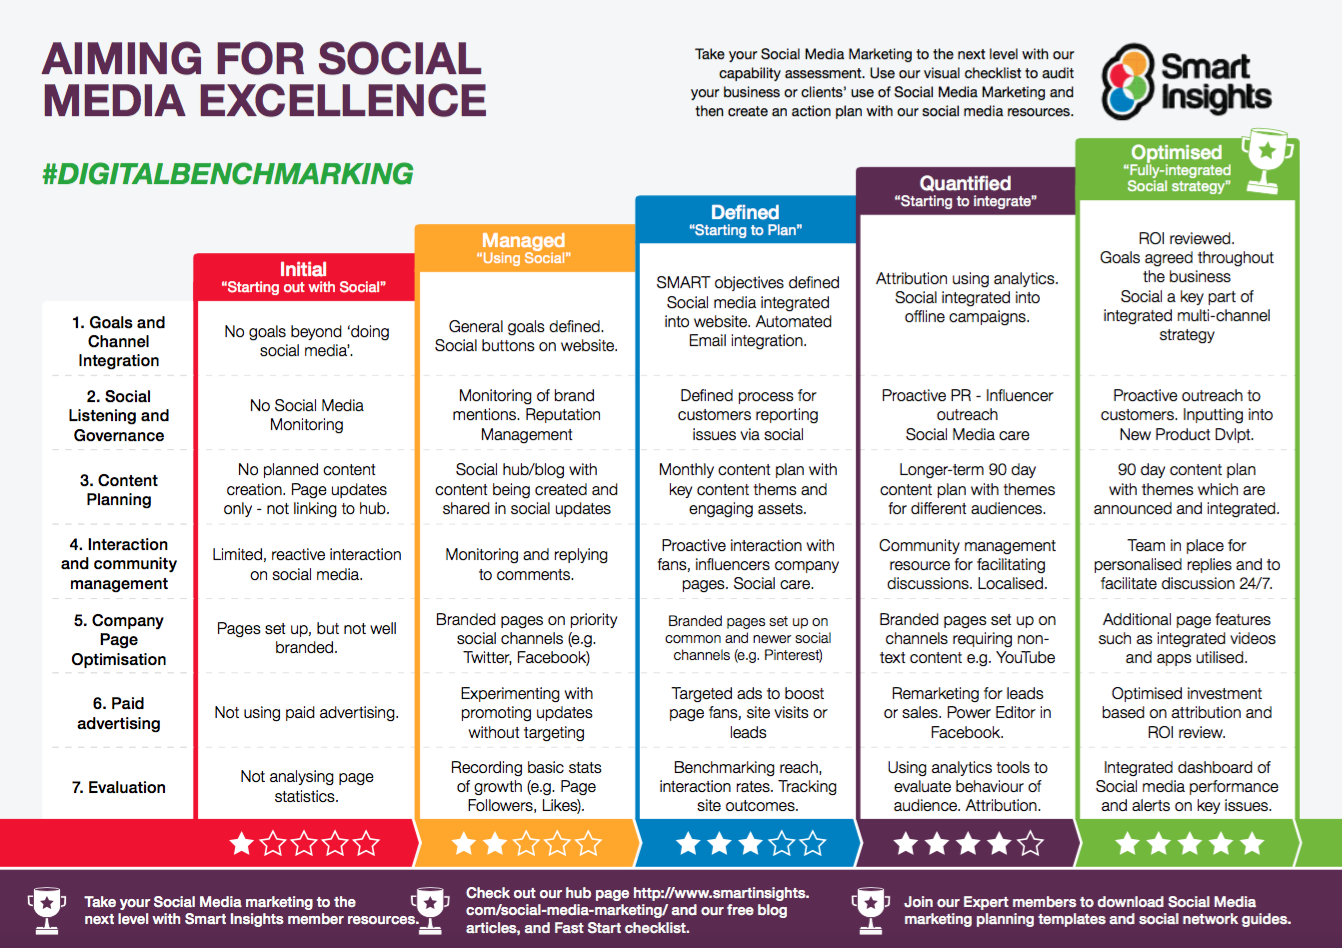 Add Value To Your Social Media Posts With Variance For Example If You Share A Post A Social Media Planning Social Media Marketing Plan Social Media Marketing